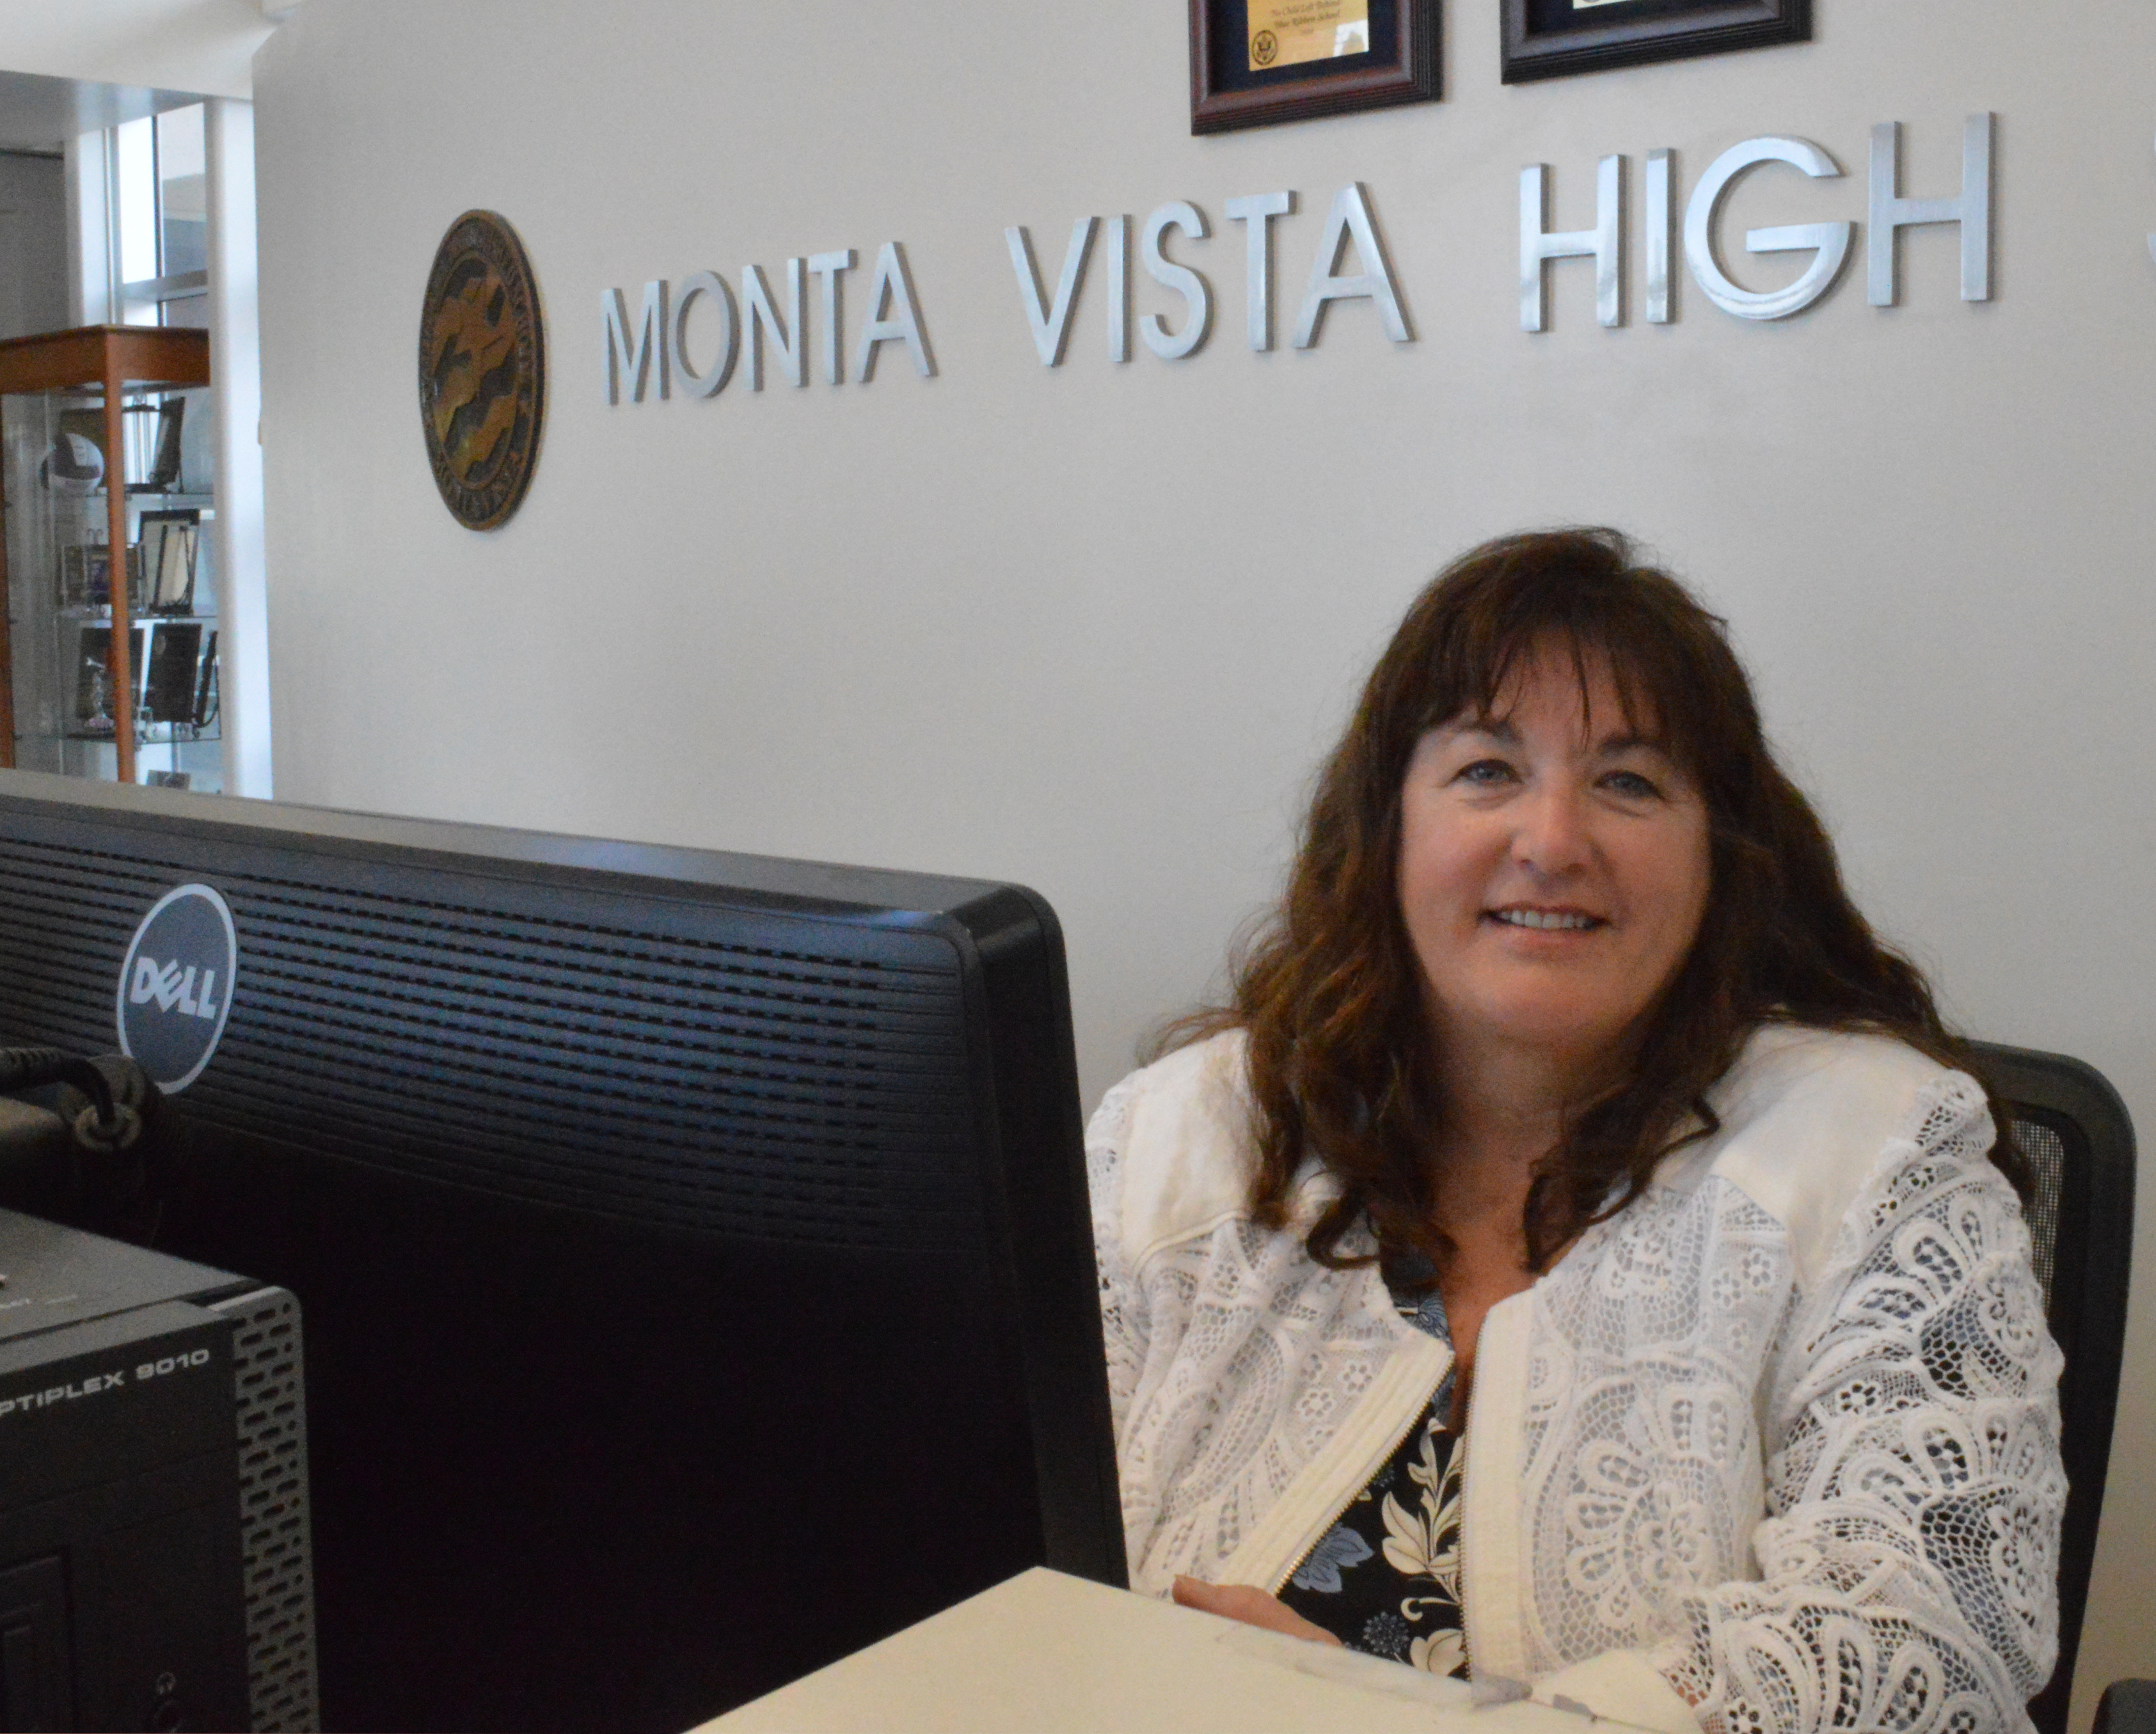 Giarritta poses at the front desk of the MVHS lobby. A staff member at MVHS for two years, Giarritta is the second winner of the 2018 Employee of the Year award. Photo by Maggie McCormick.